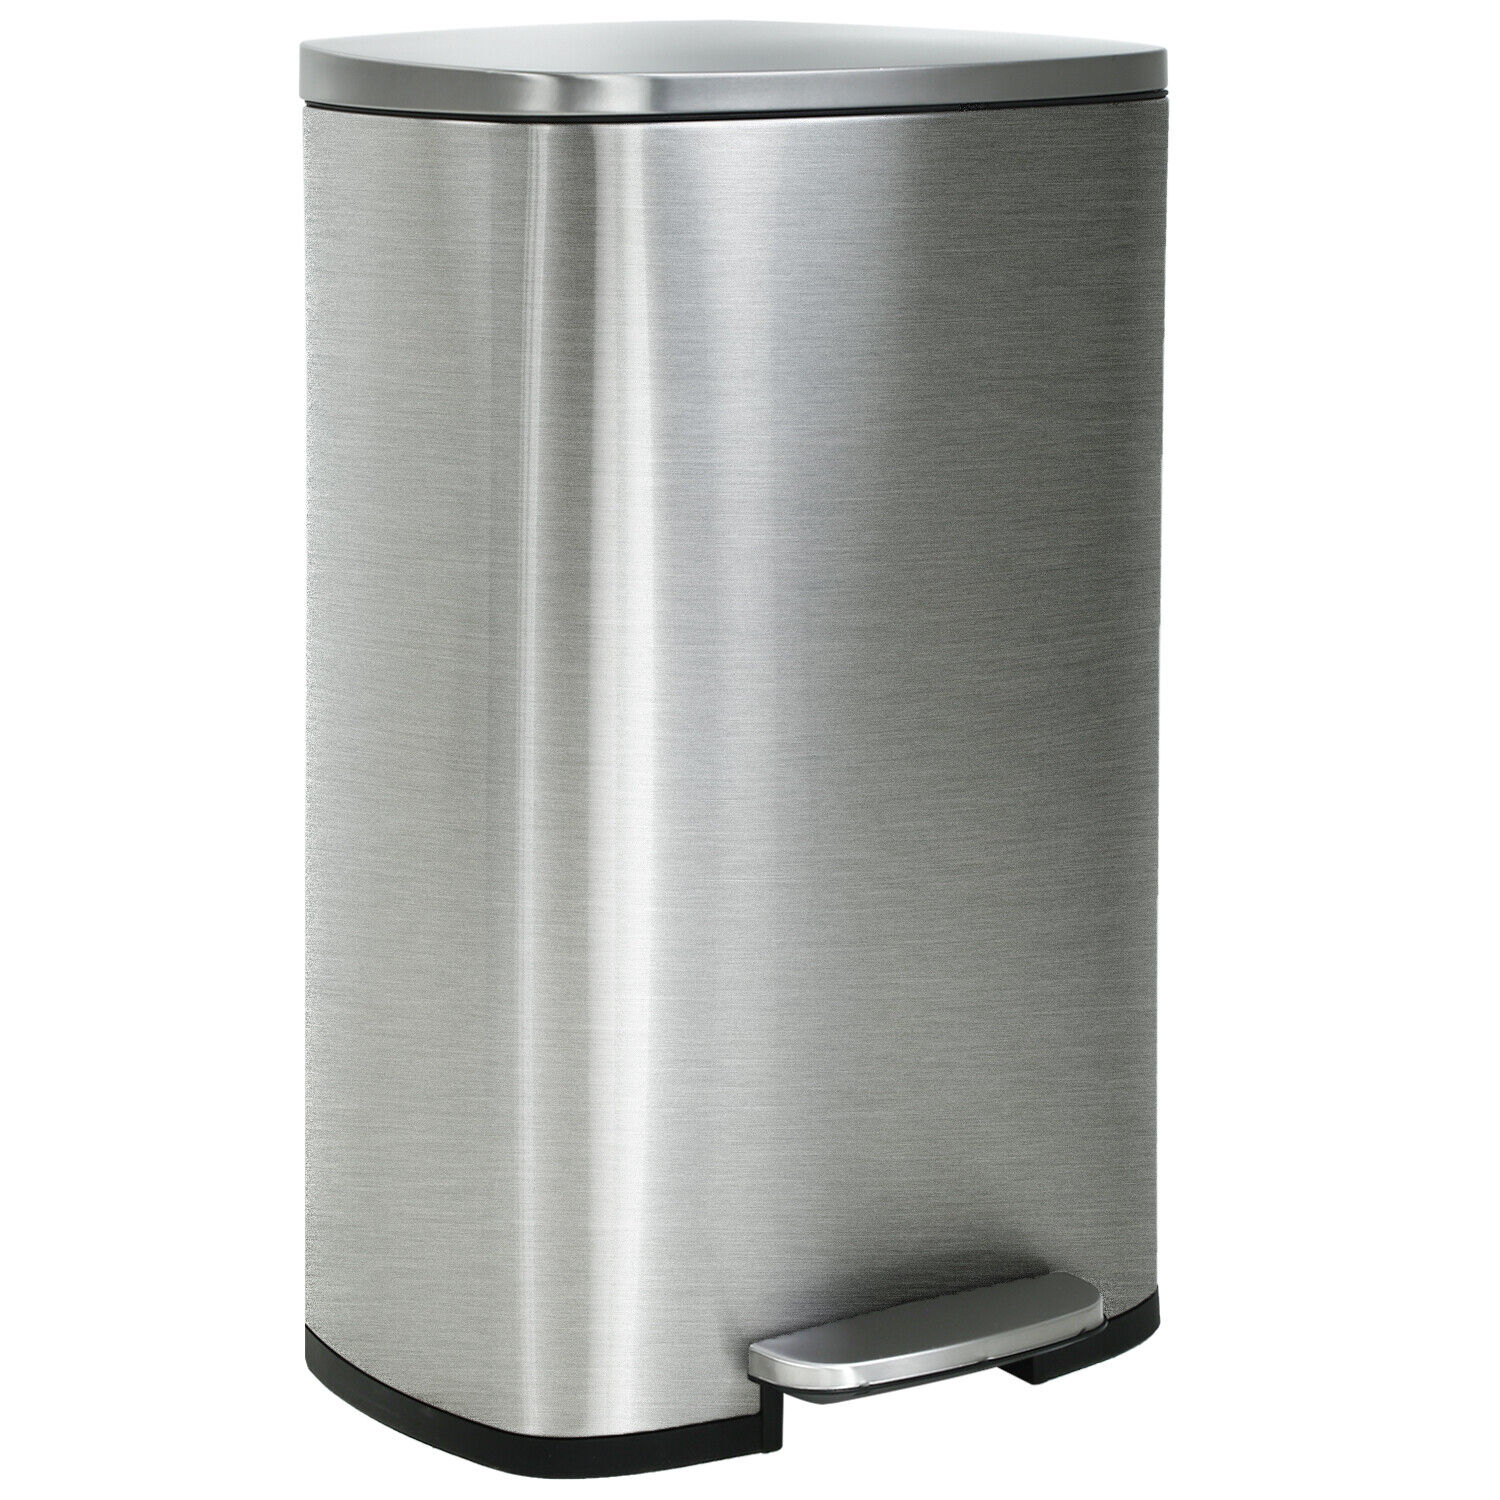 Kitchen Trash Can With Lid For Office Bedroom Step Trash